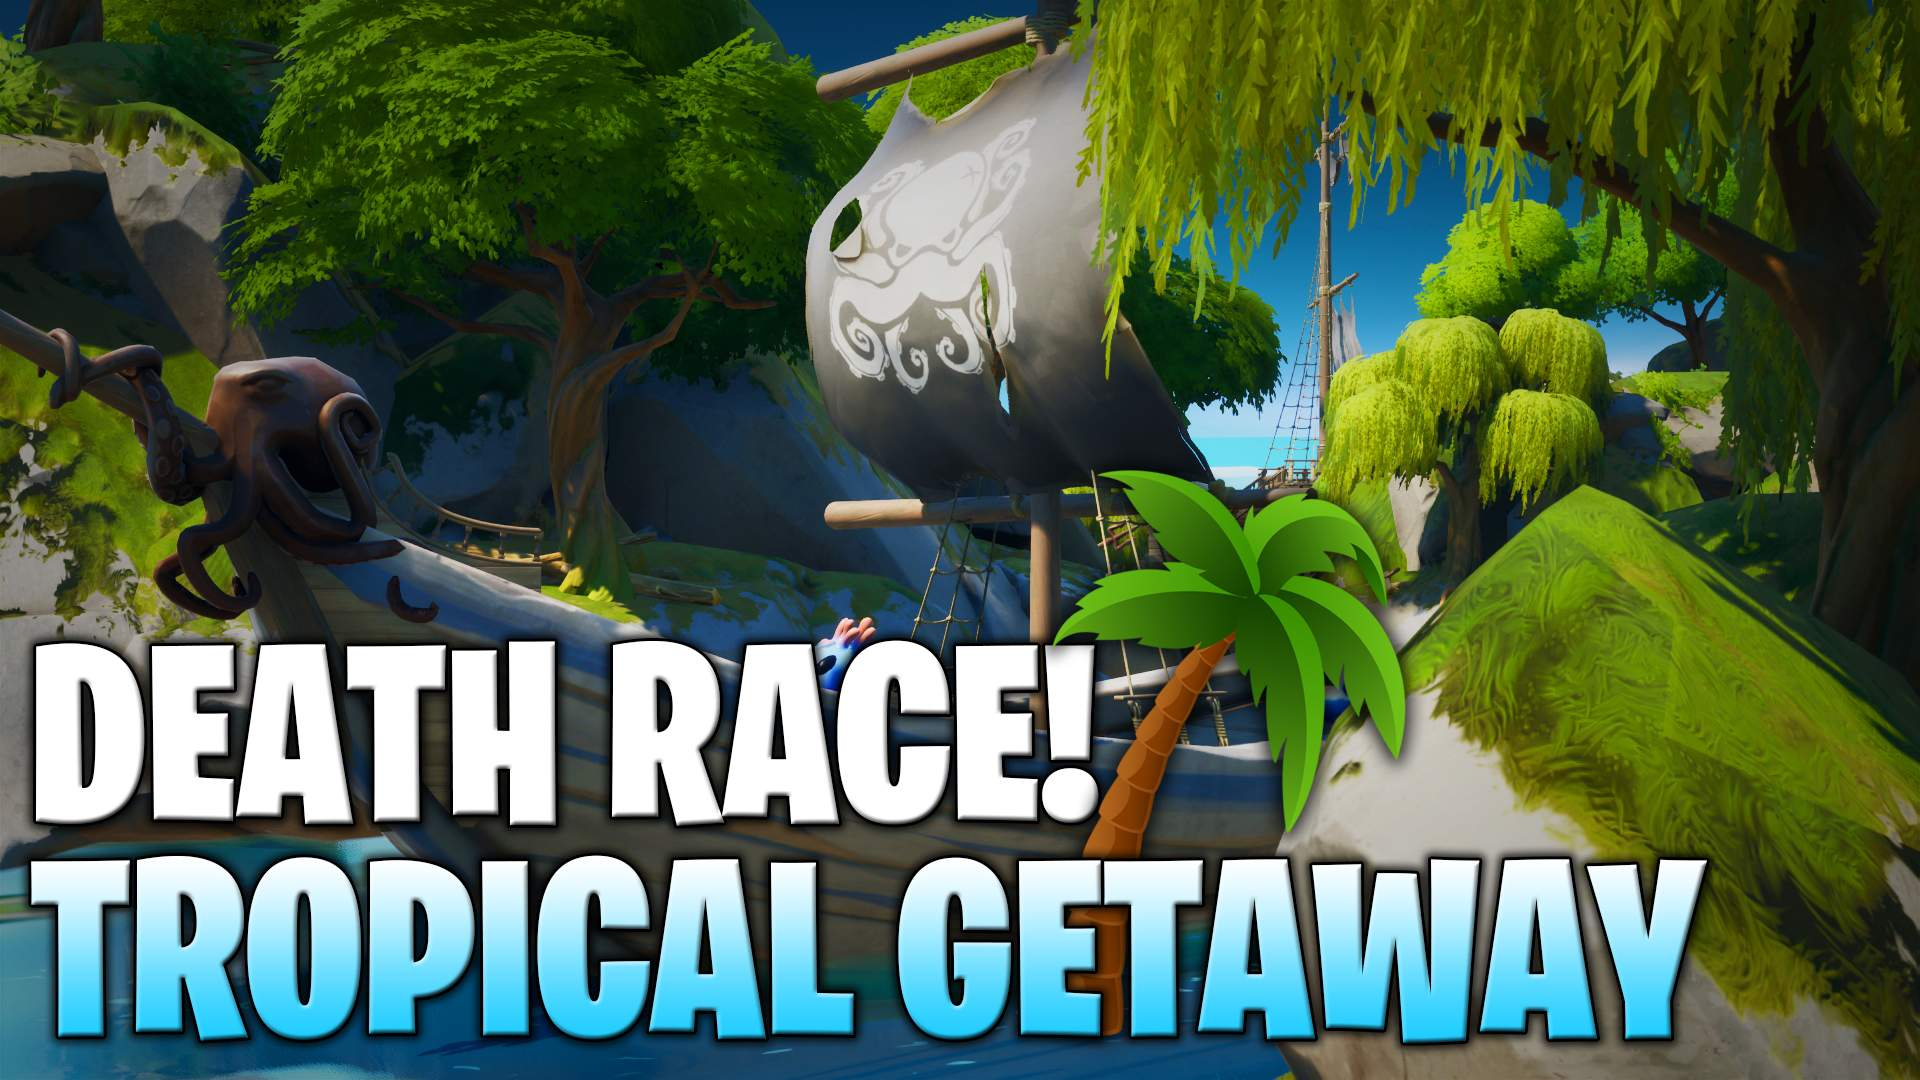 DEATH RACE - TROPICAL GETAWAY